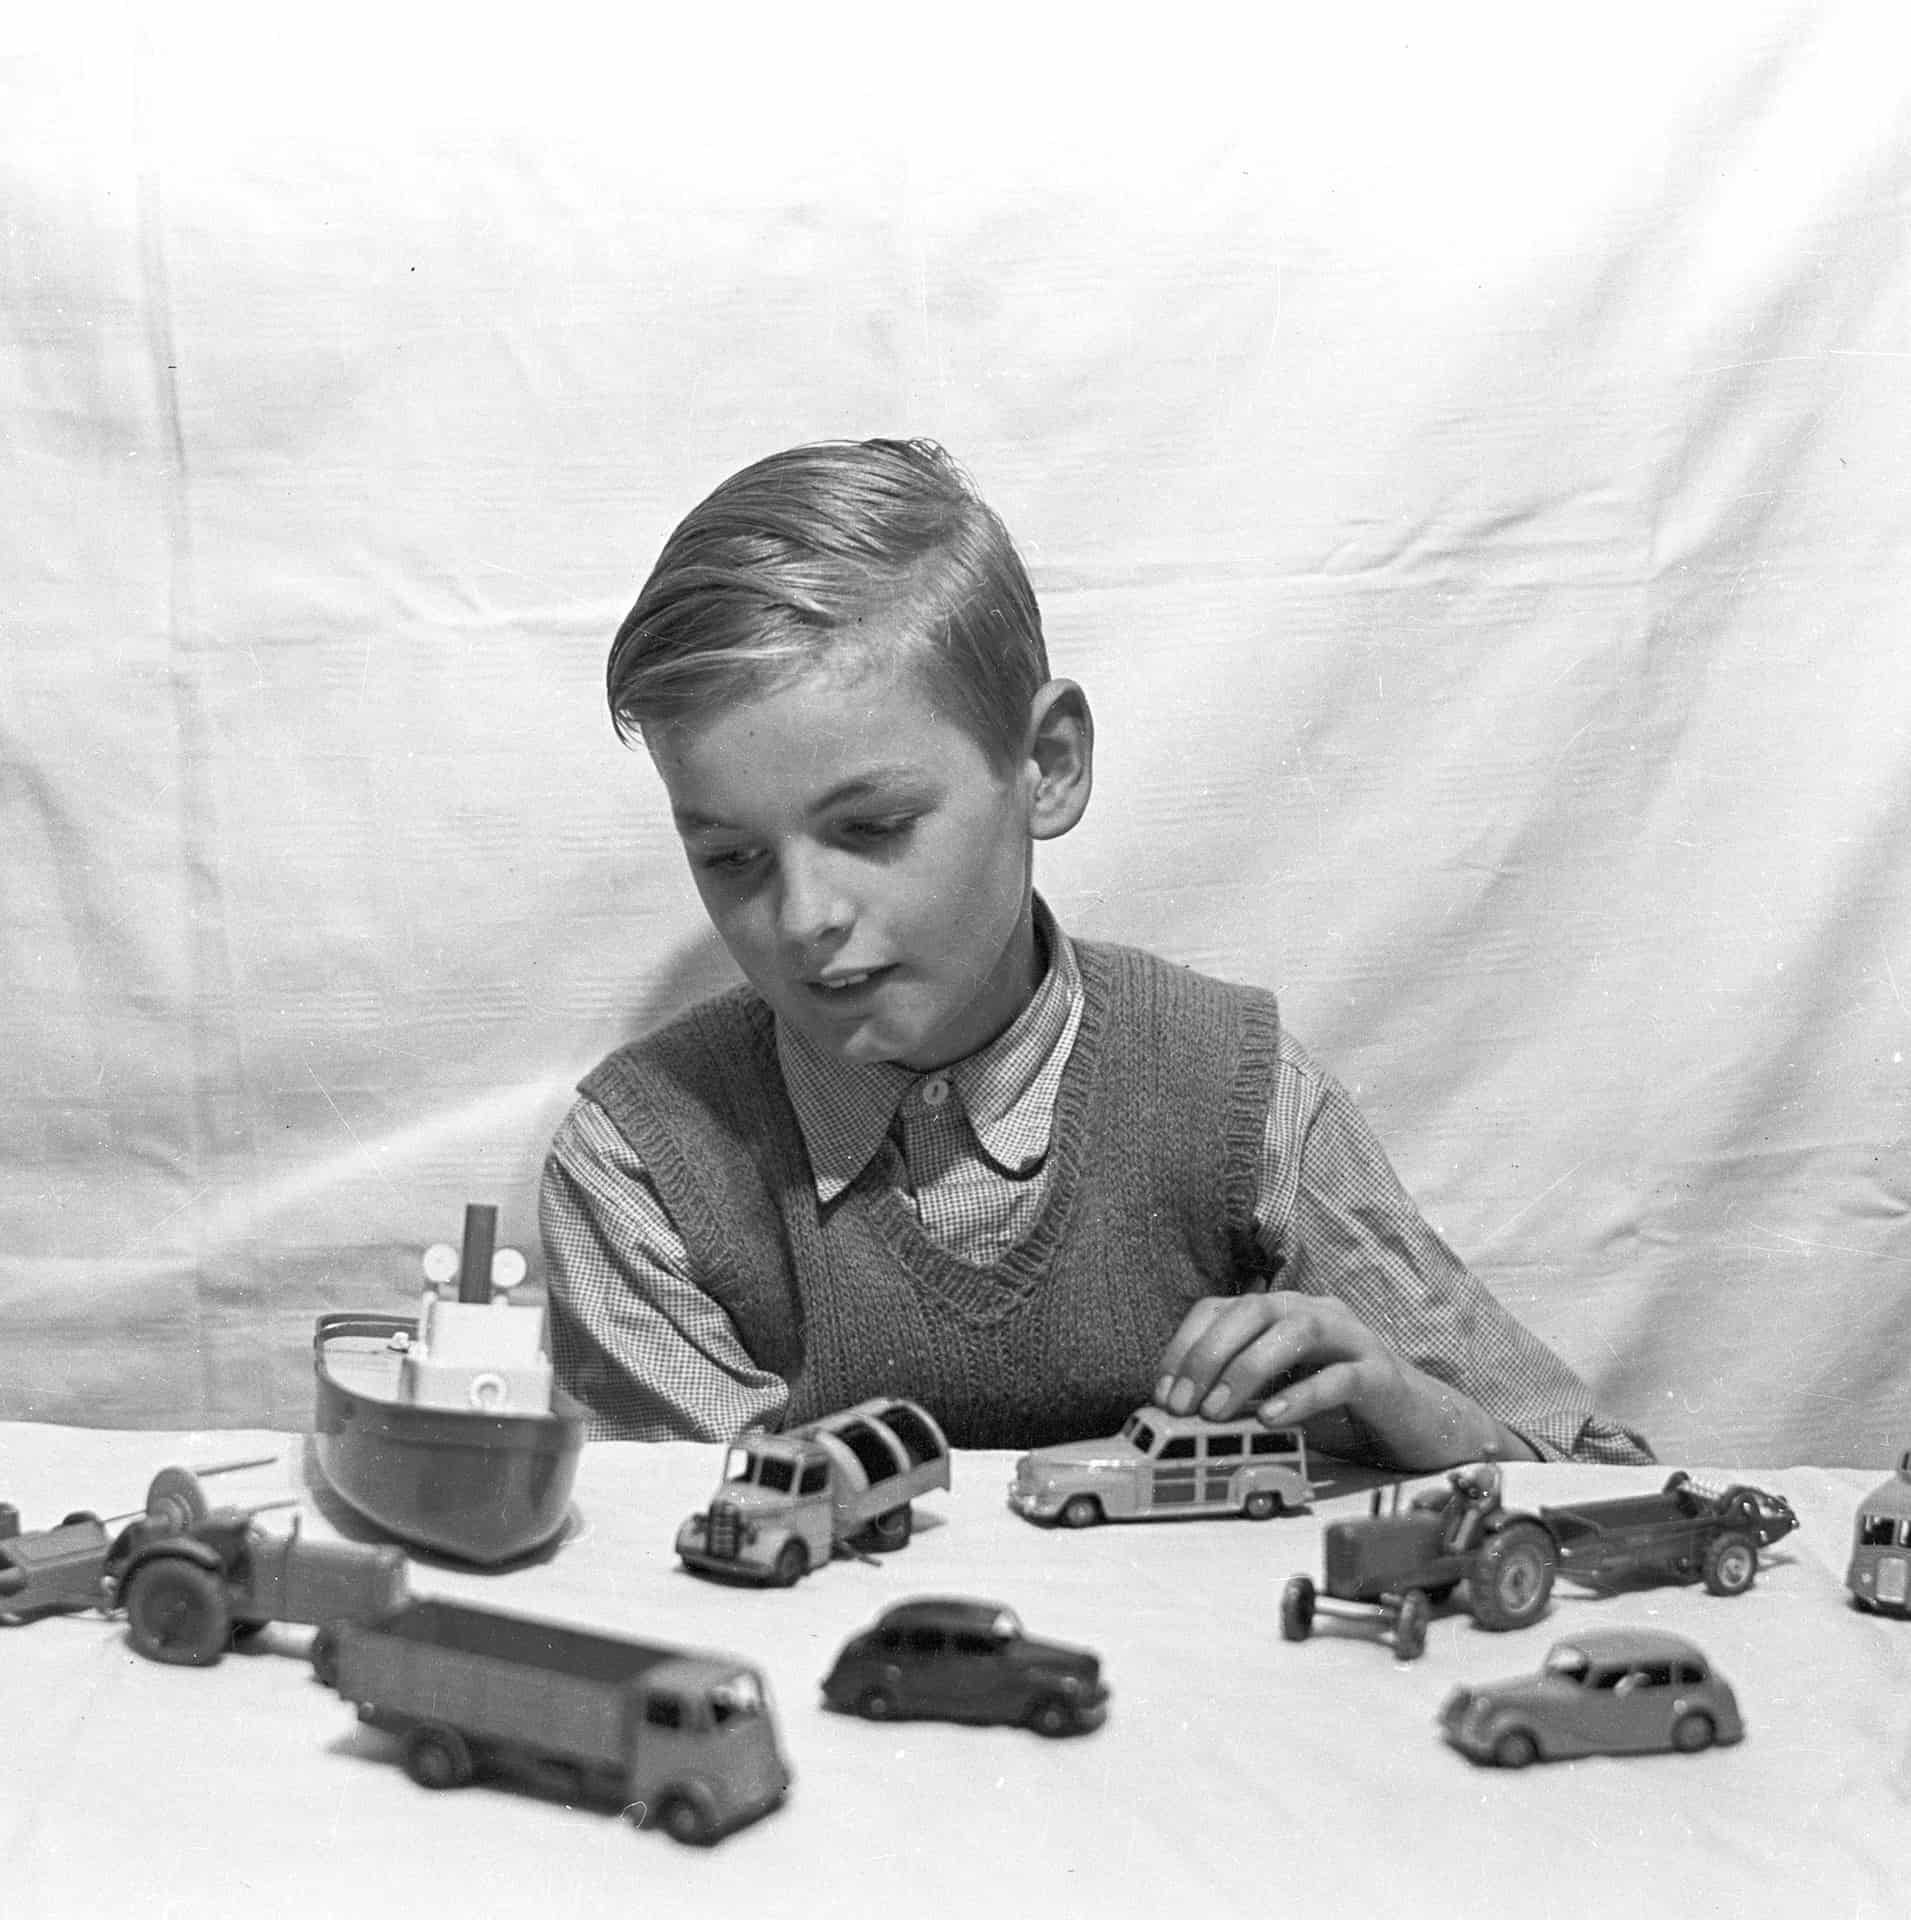 Dinky Toys were a great plaything and I still have a number 68 year on. Here I am 9 years only with a refuse collection truck and a set of racing cars. The photo was taken by my dad.